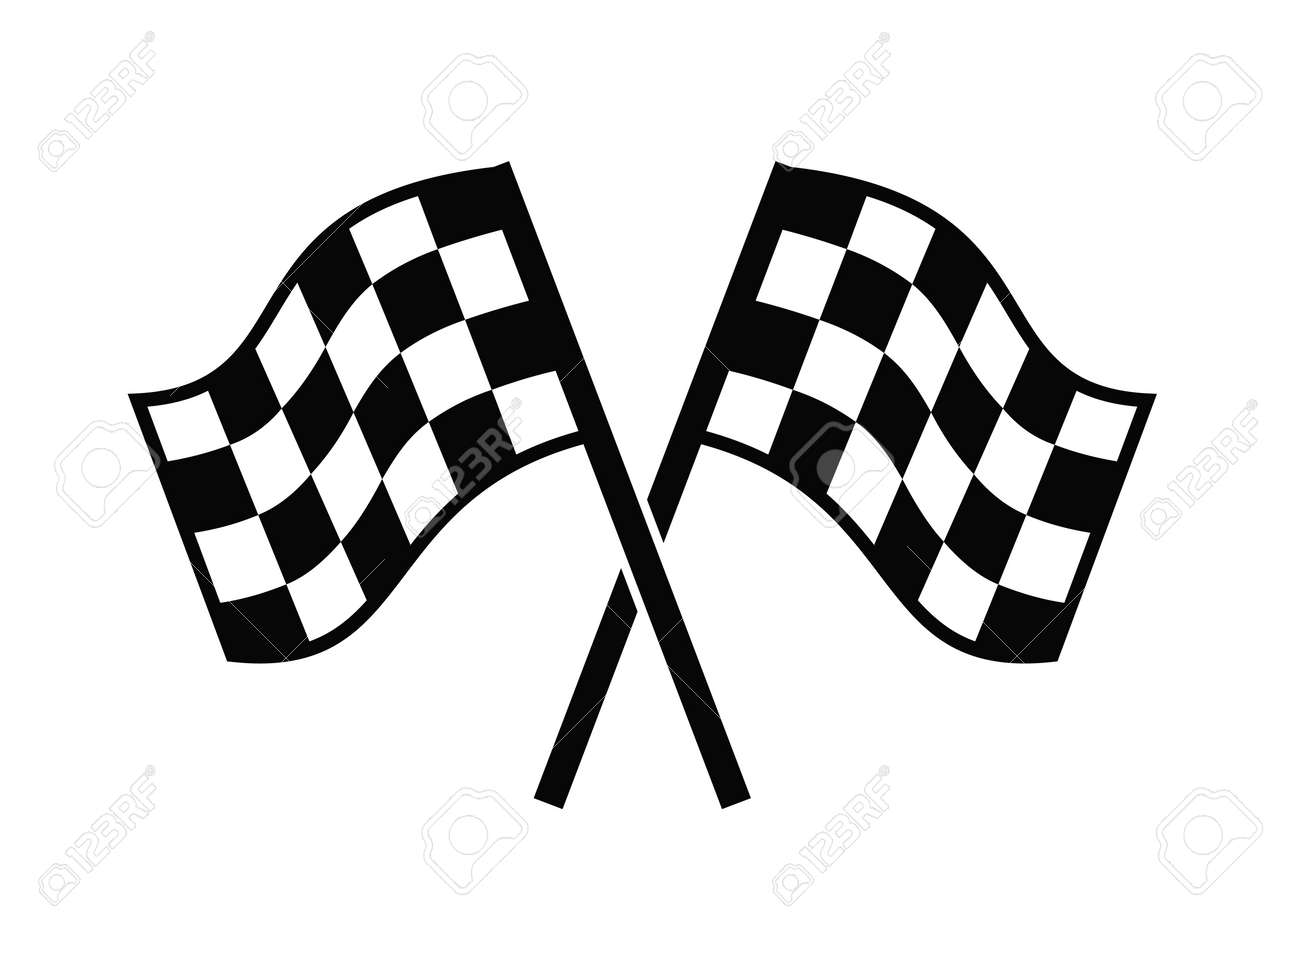 checkered flags icon royalty free cliparts vectors and stock rh 123rf com racing flags vector art free racing flag logo free vector